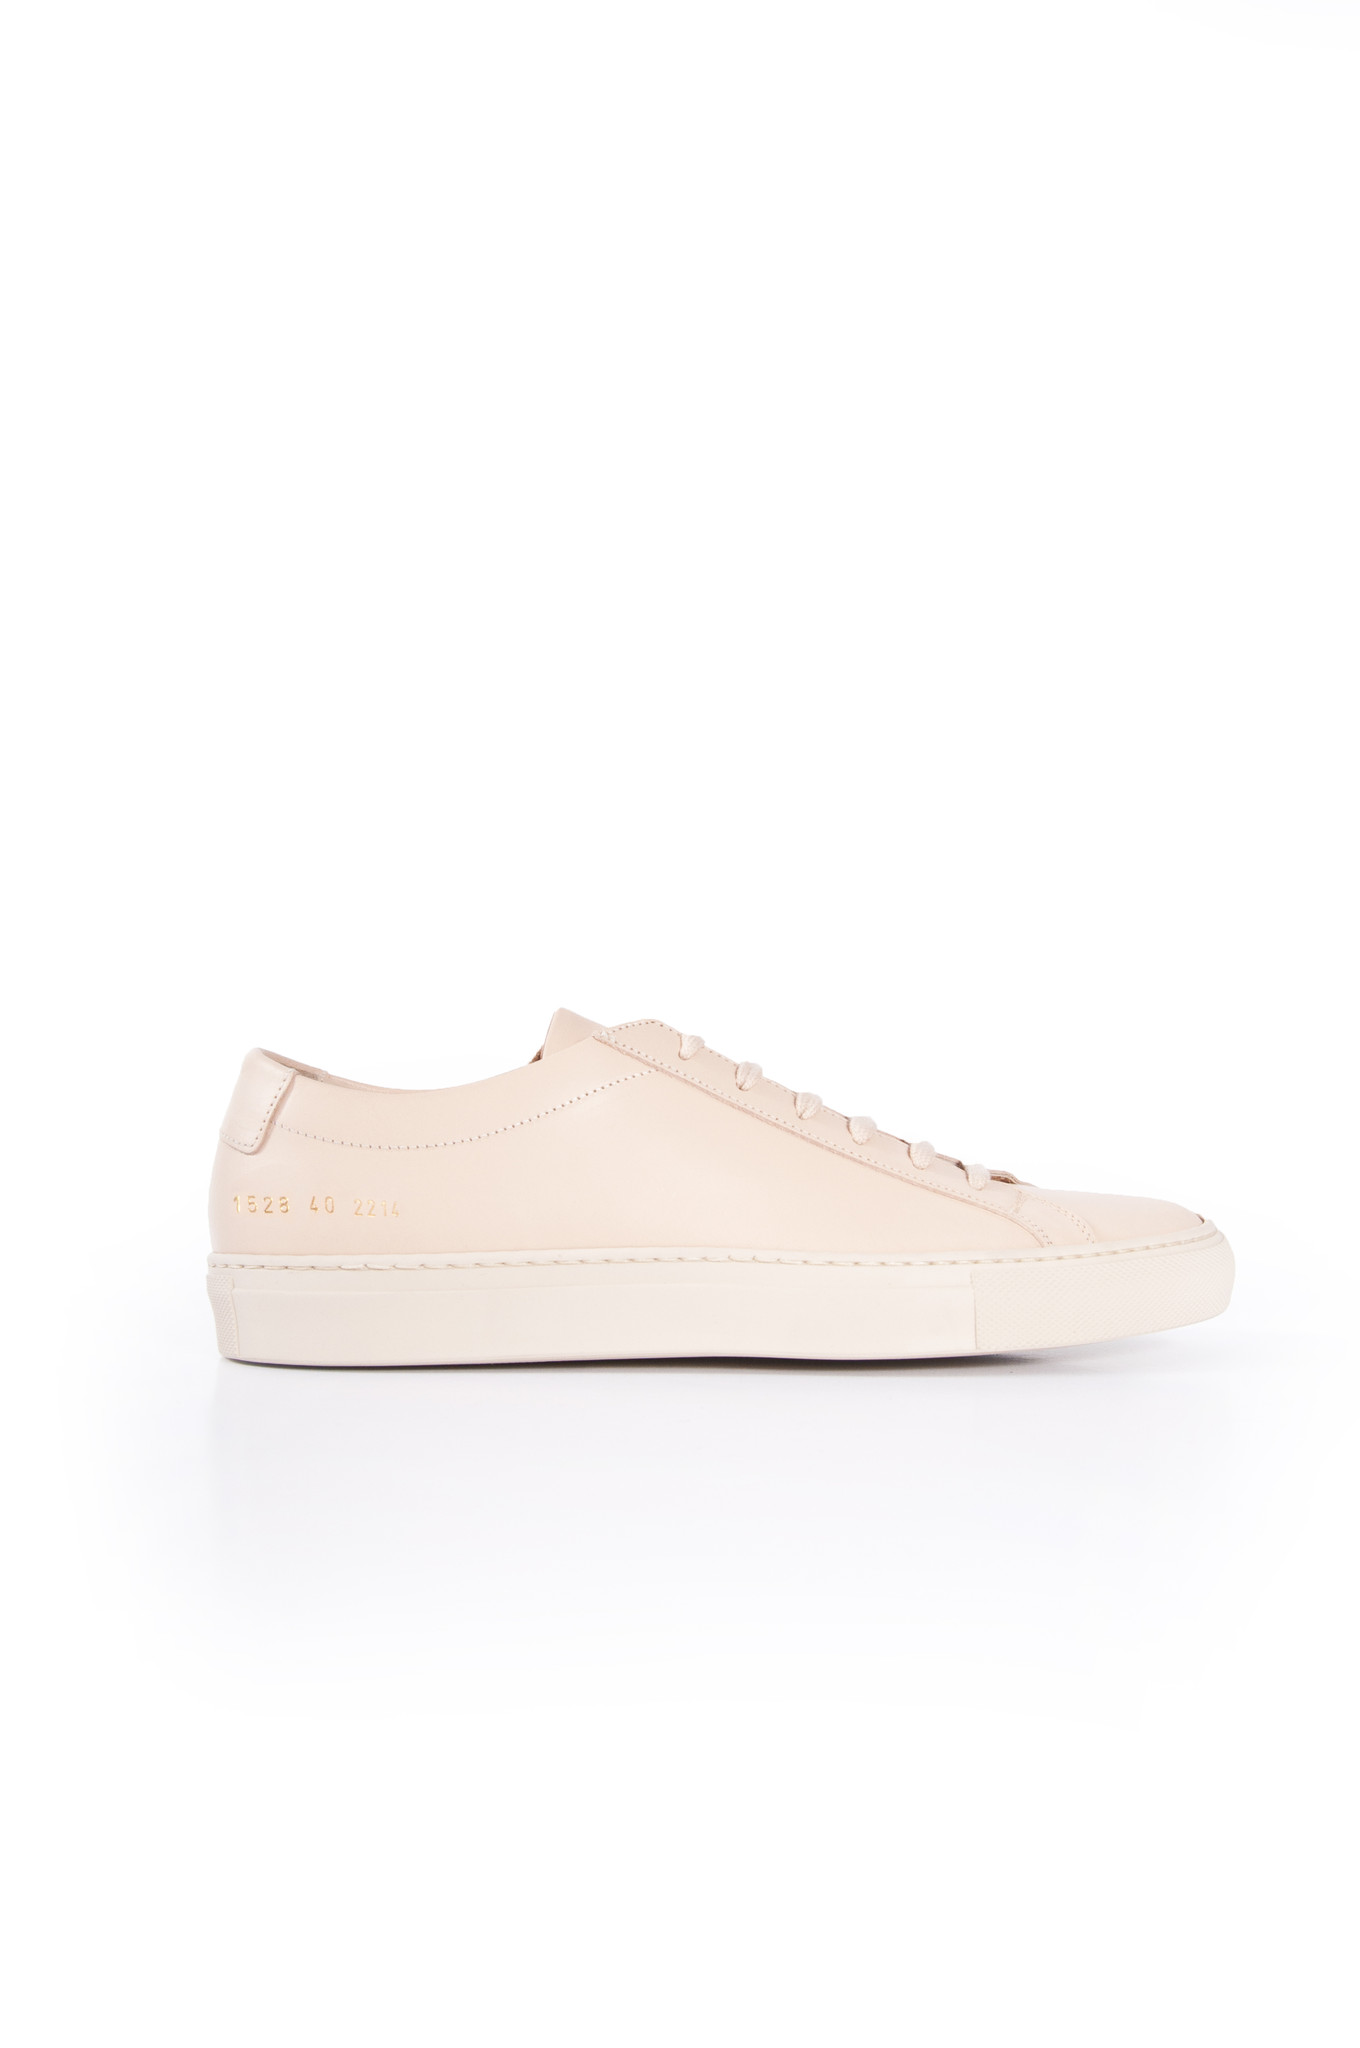 common projects original achilles low natural from four horsemen garmentory. Black Bedroom Furniture Sets. Home Design Ideas